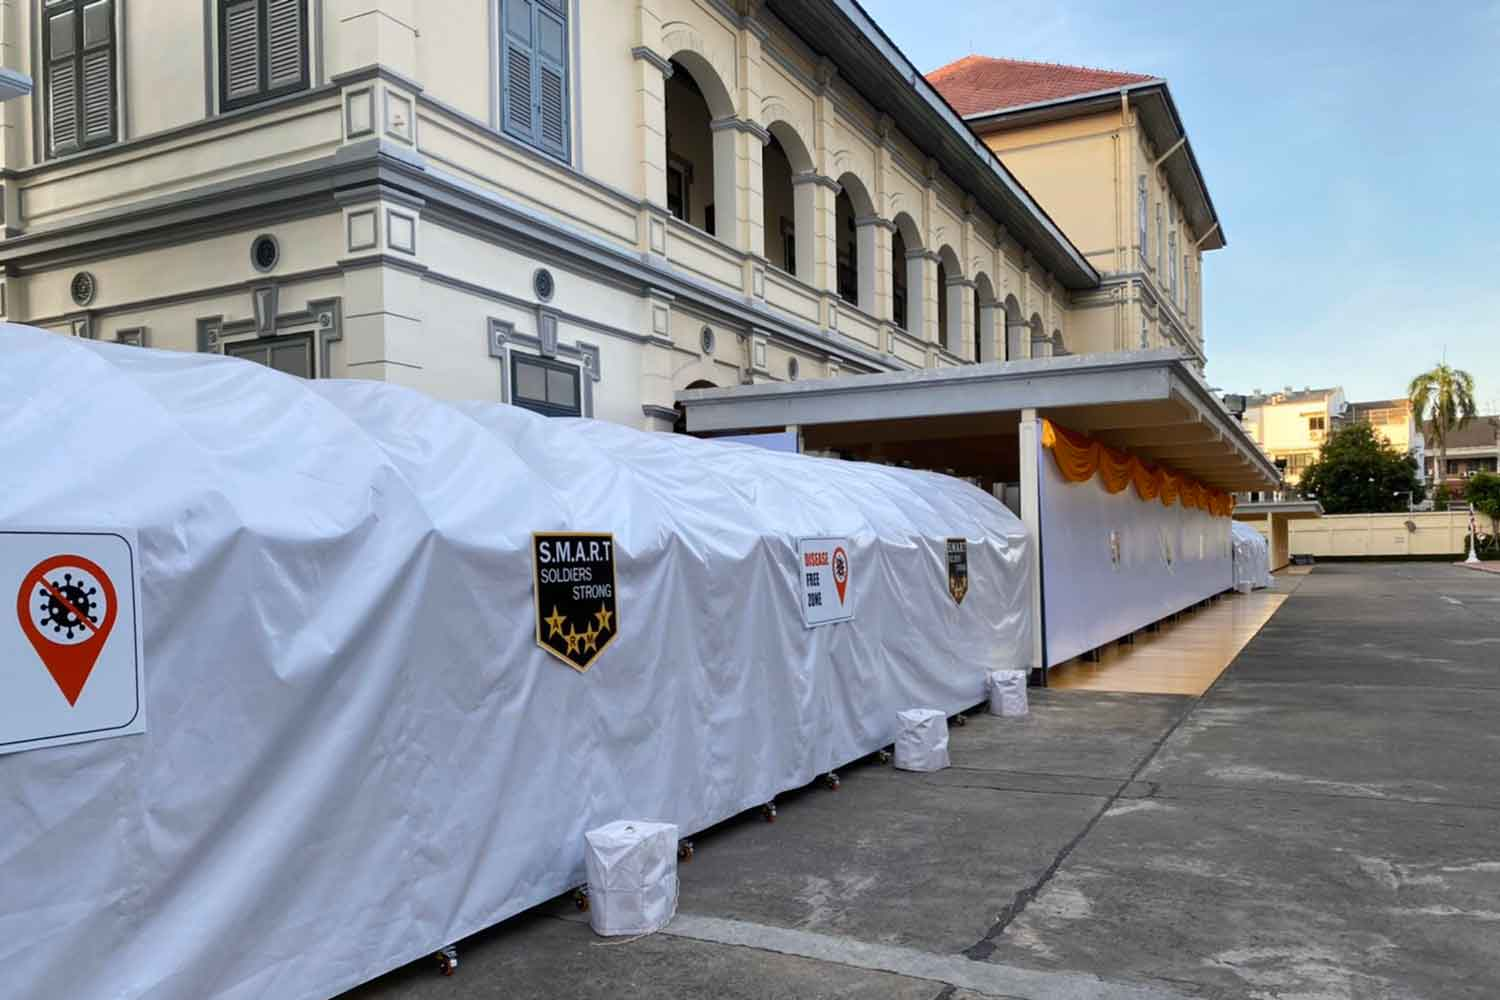 The entrance pathway at army headquarters in Bangkok was santised and covered over before the arrival of the US army chief-of-staff. (Army photo)